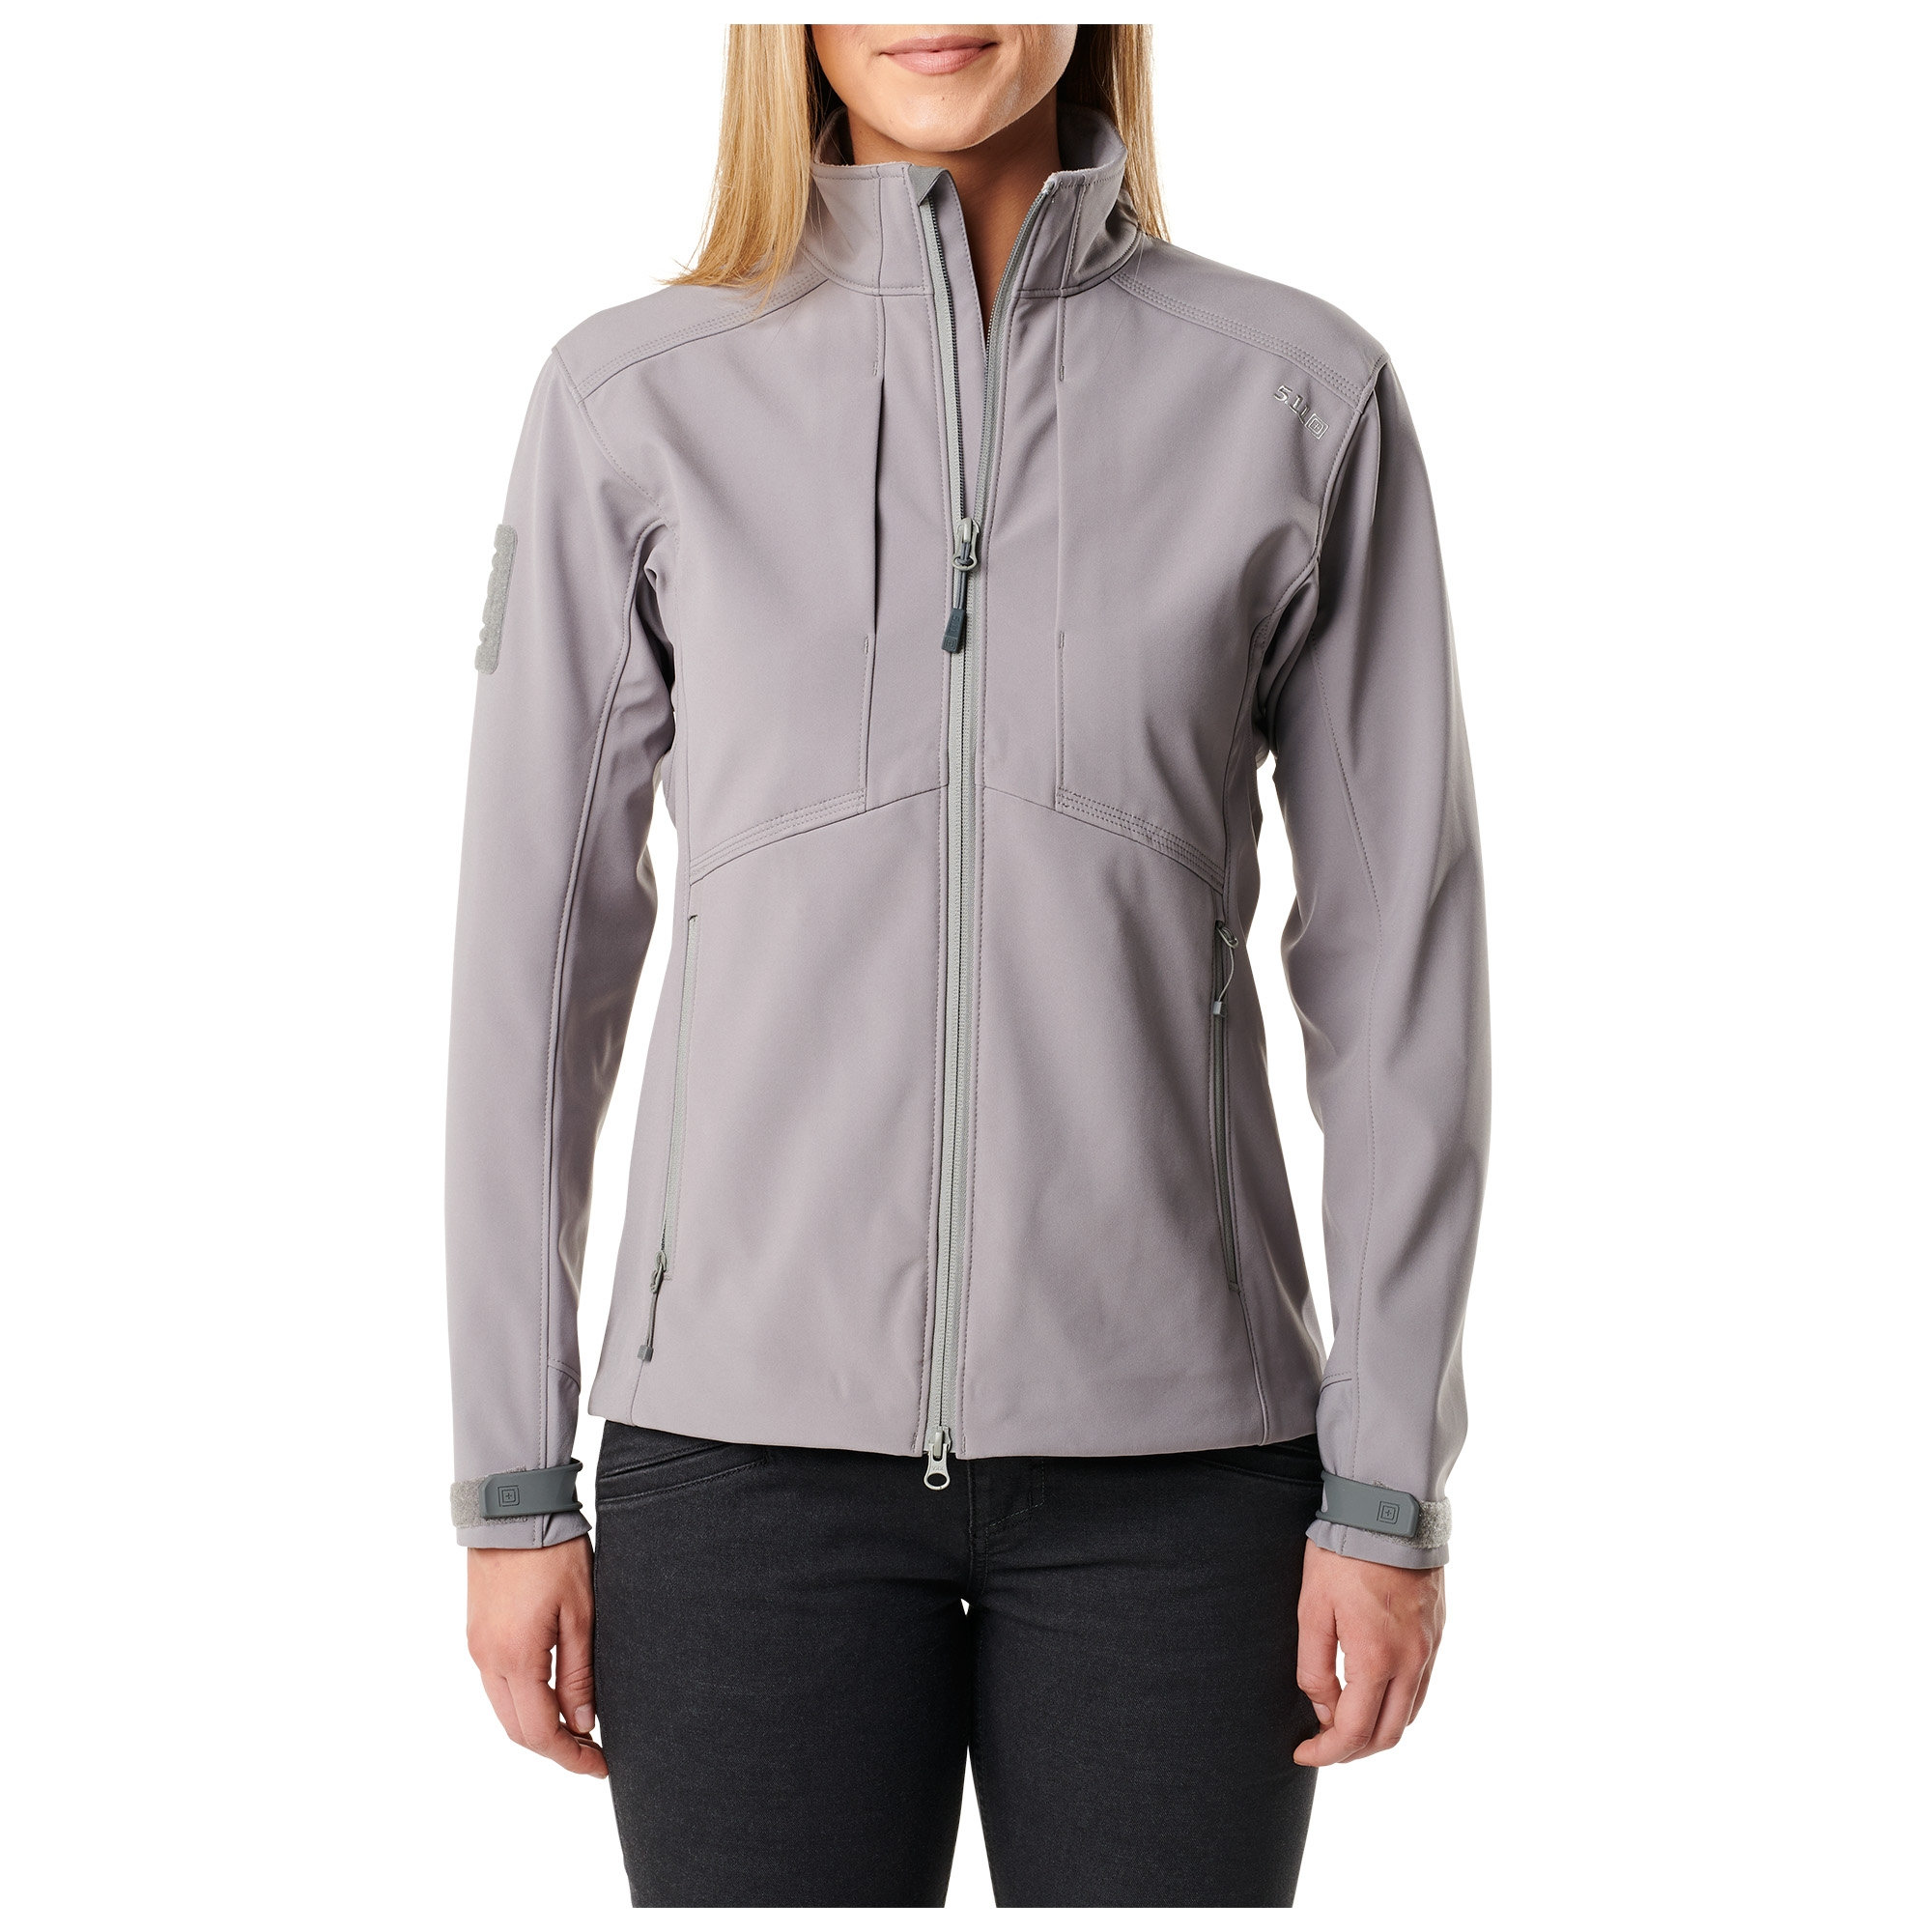 5.11 Tactical Women's Womens Sierra Softshell (Green)